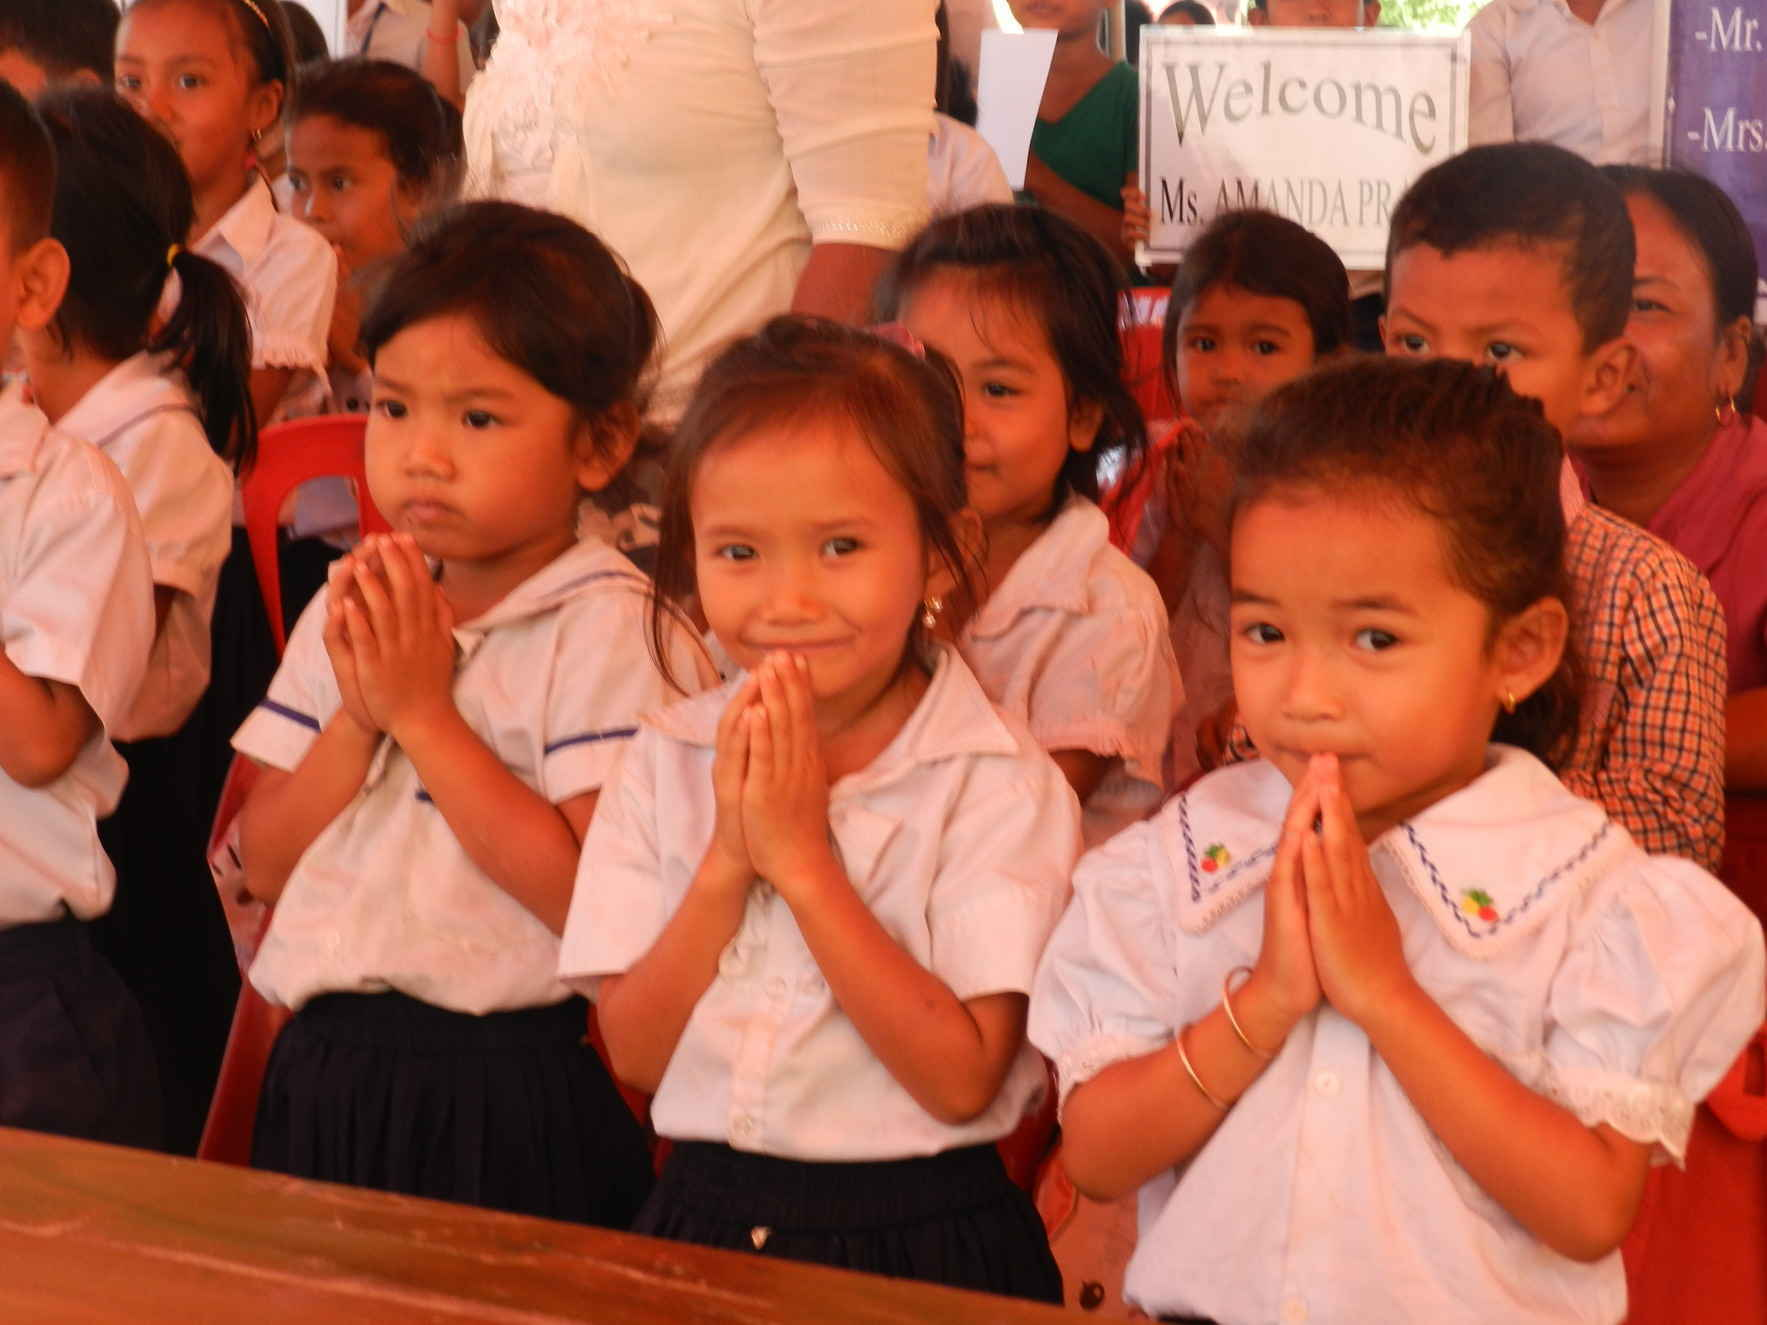 Together we build schools for the impoverished children of Cambodia image